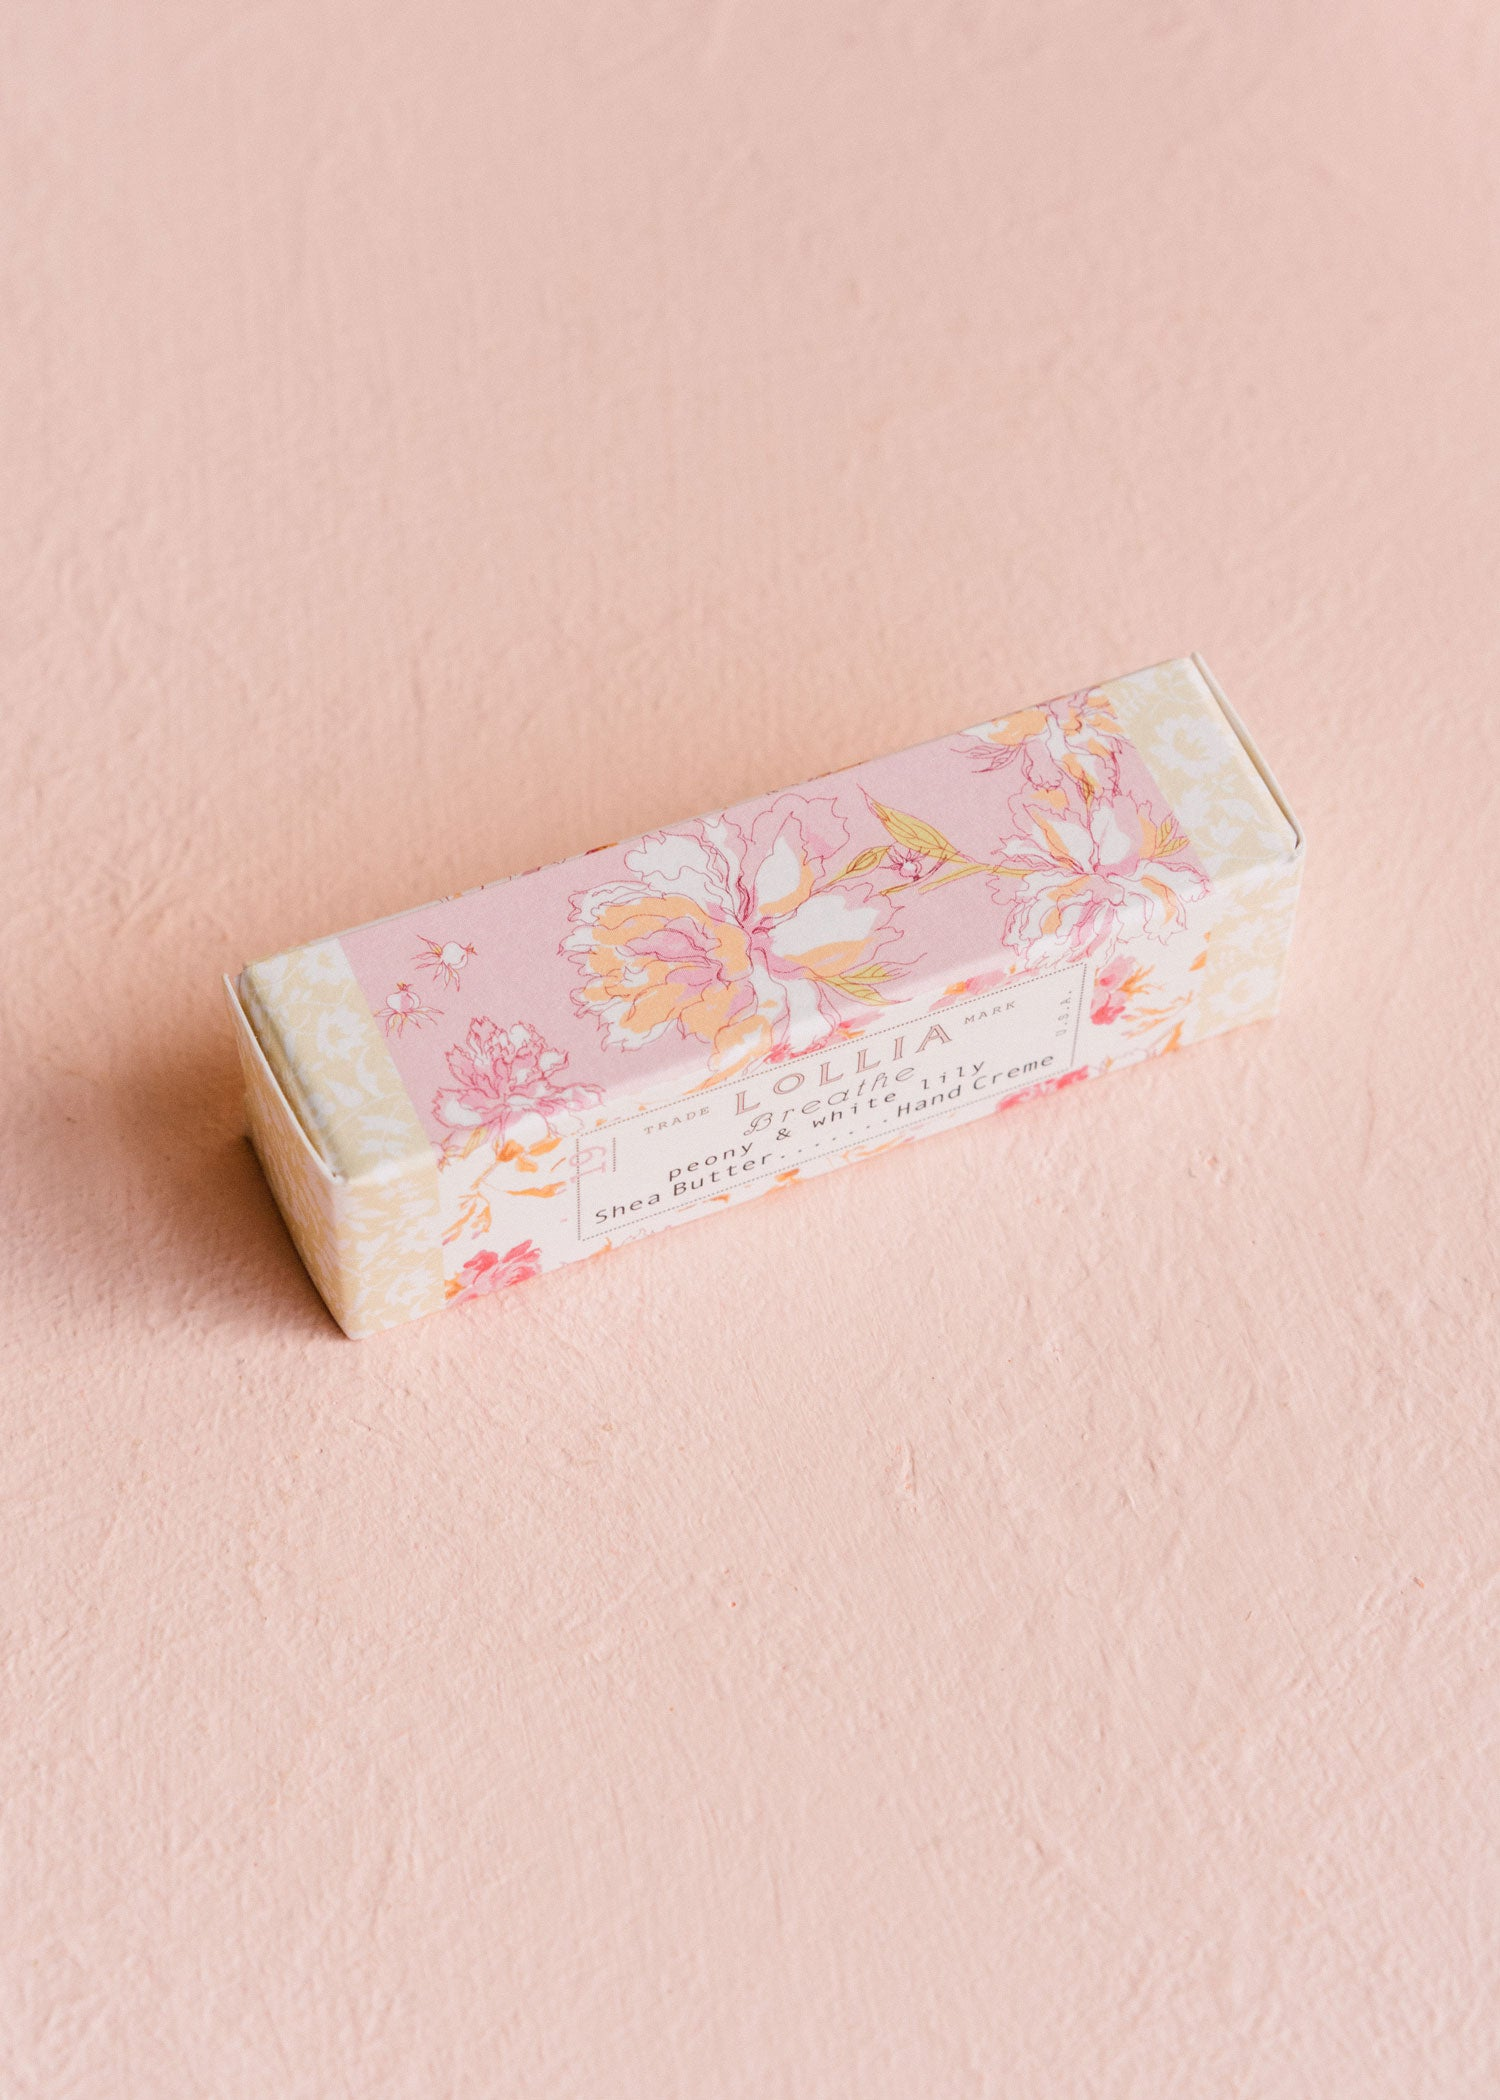 Breathe Petite Treat Handcreme